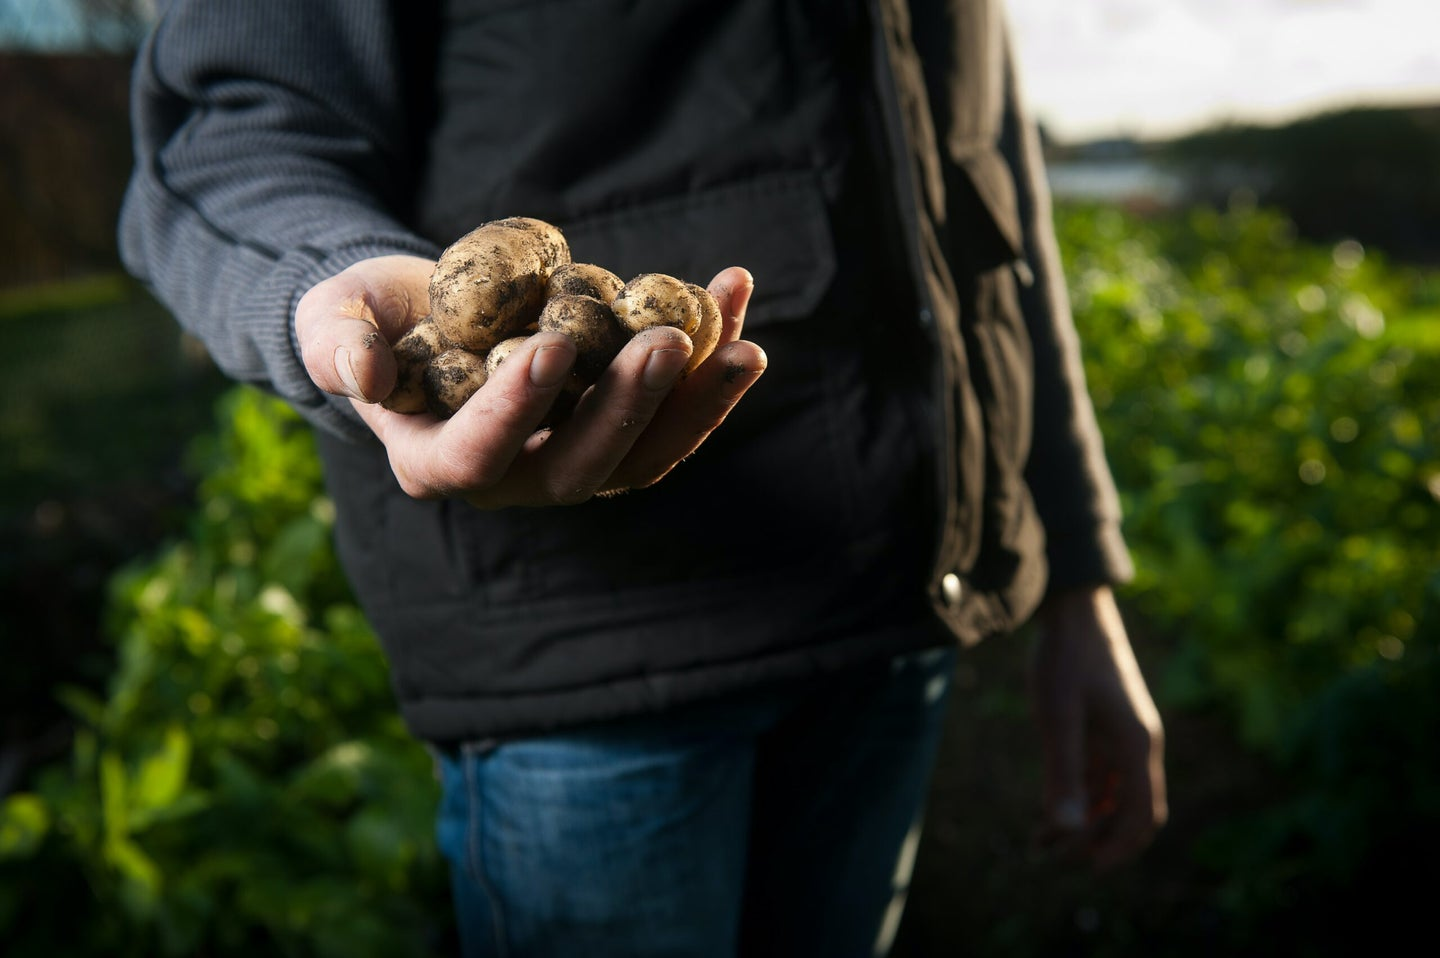 person holding potatoes in a field